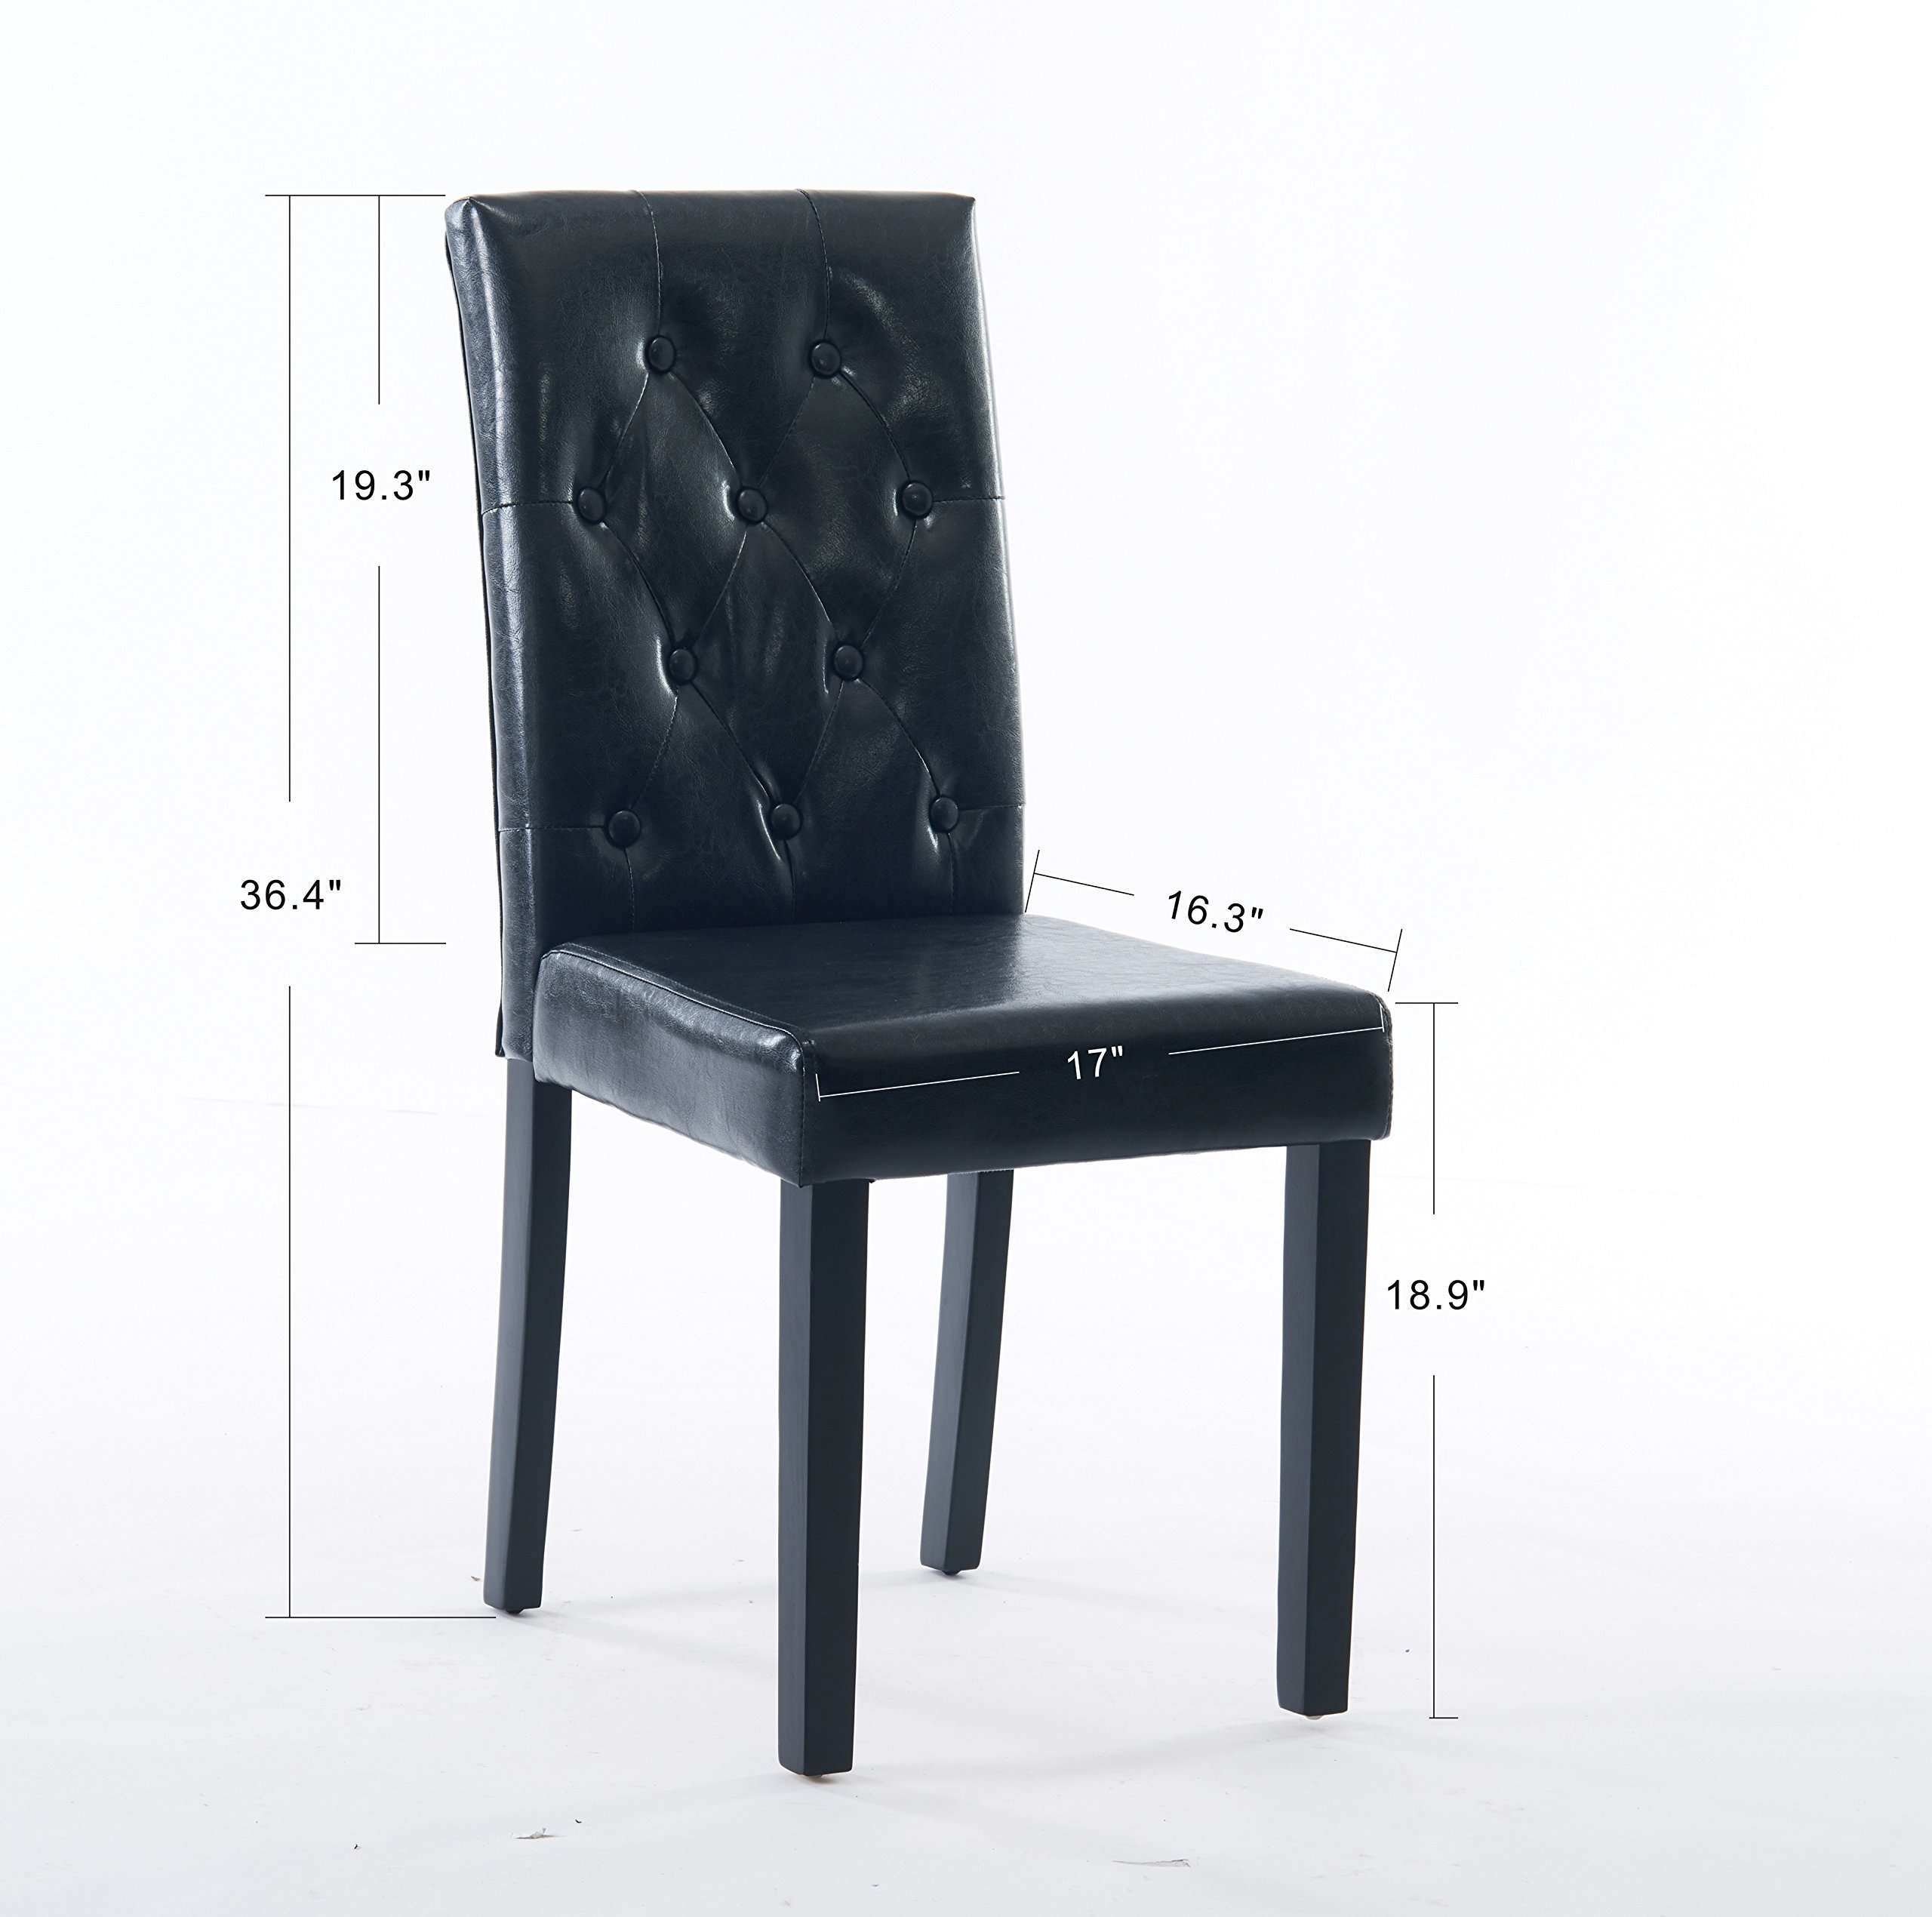 Comfortable Live New Modern Style Dining Chair in Home and Garden with Leather Set of 2(black) by Comfortable live (Image #2)